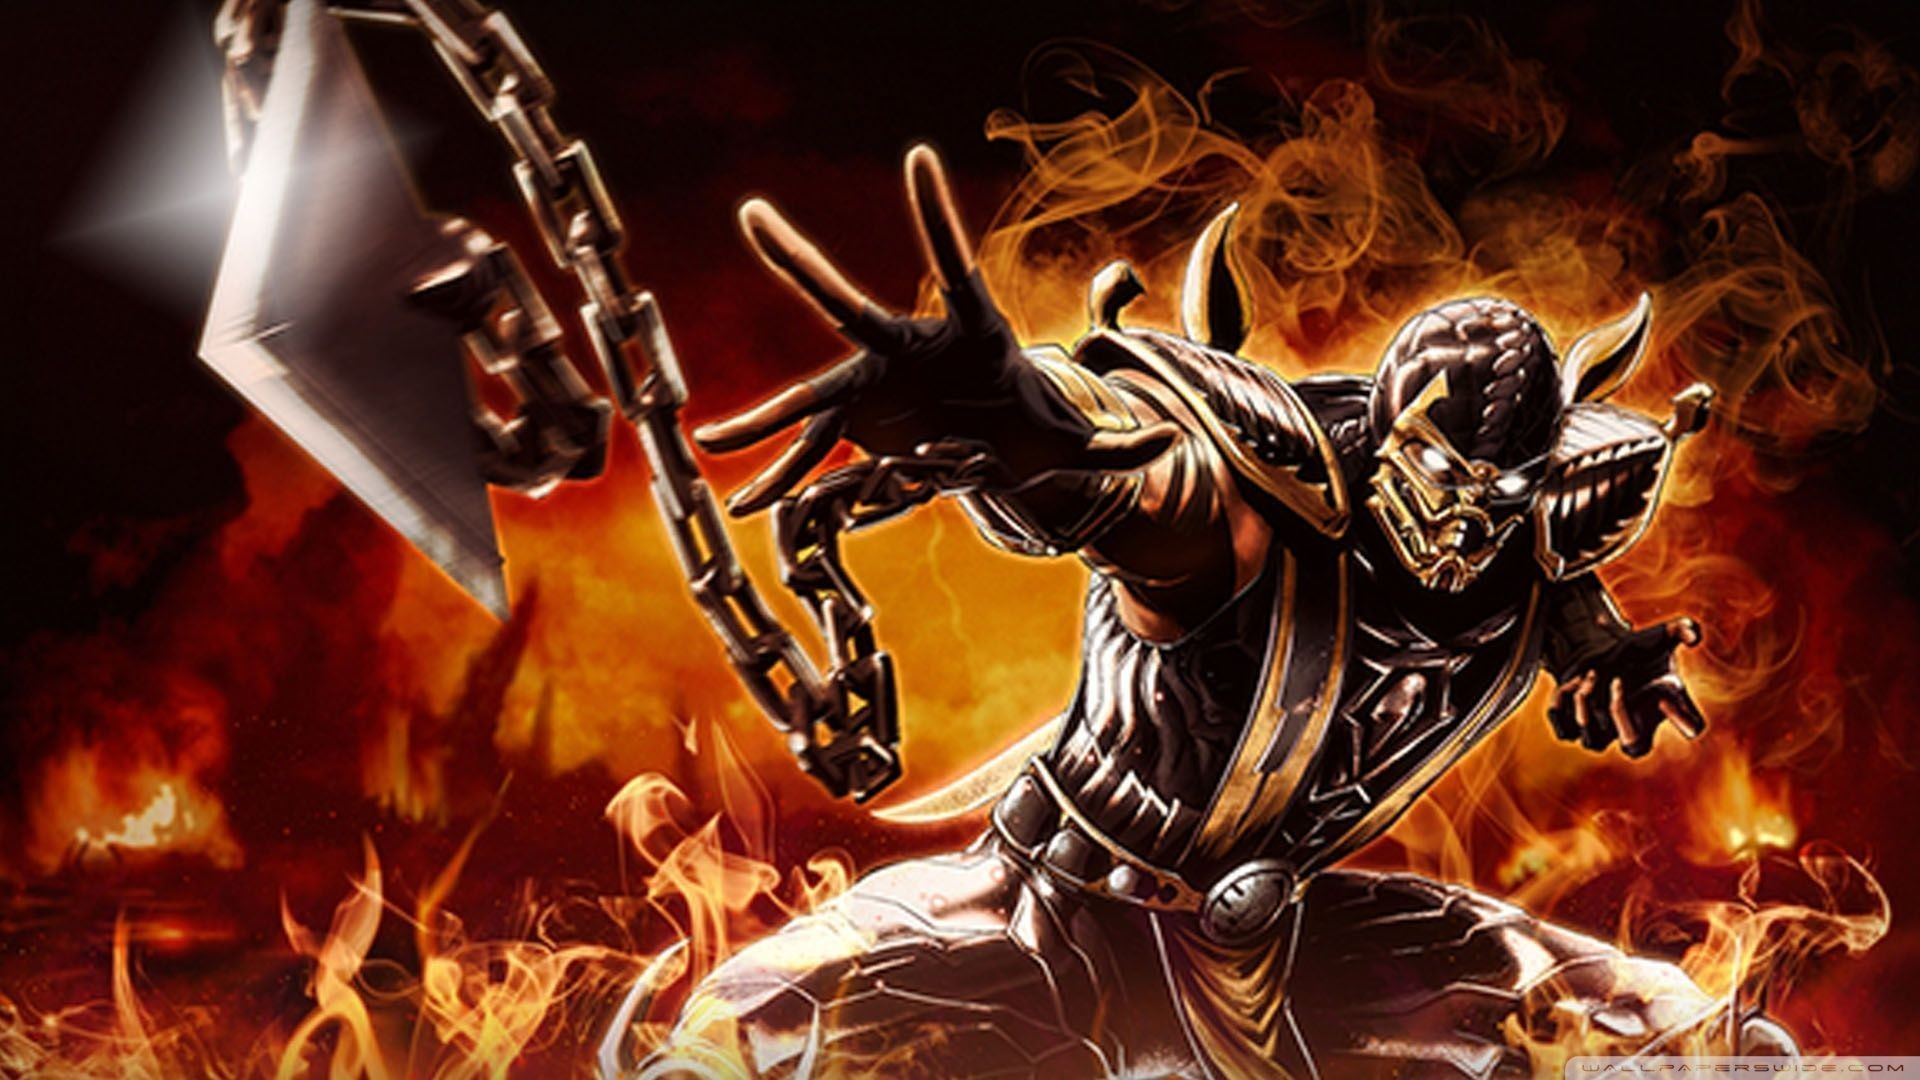 71+ Mortal Kombat X Wallpaper HD